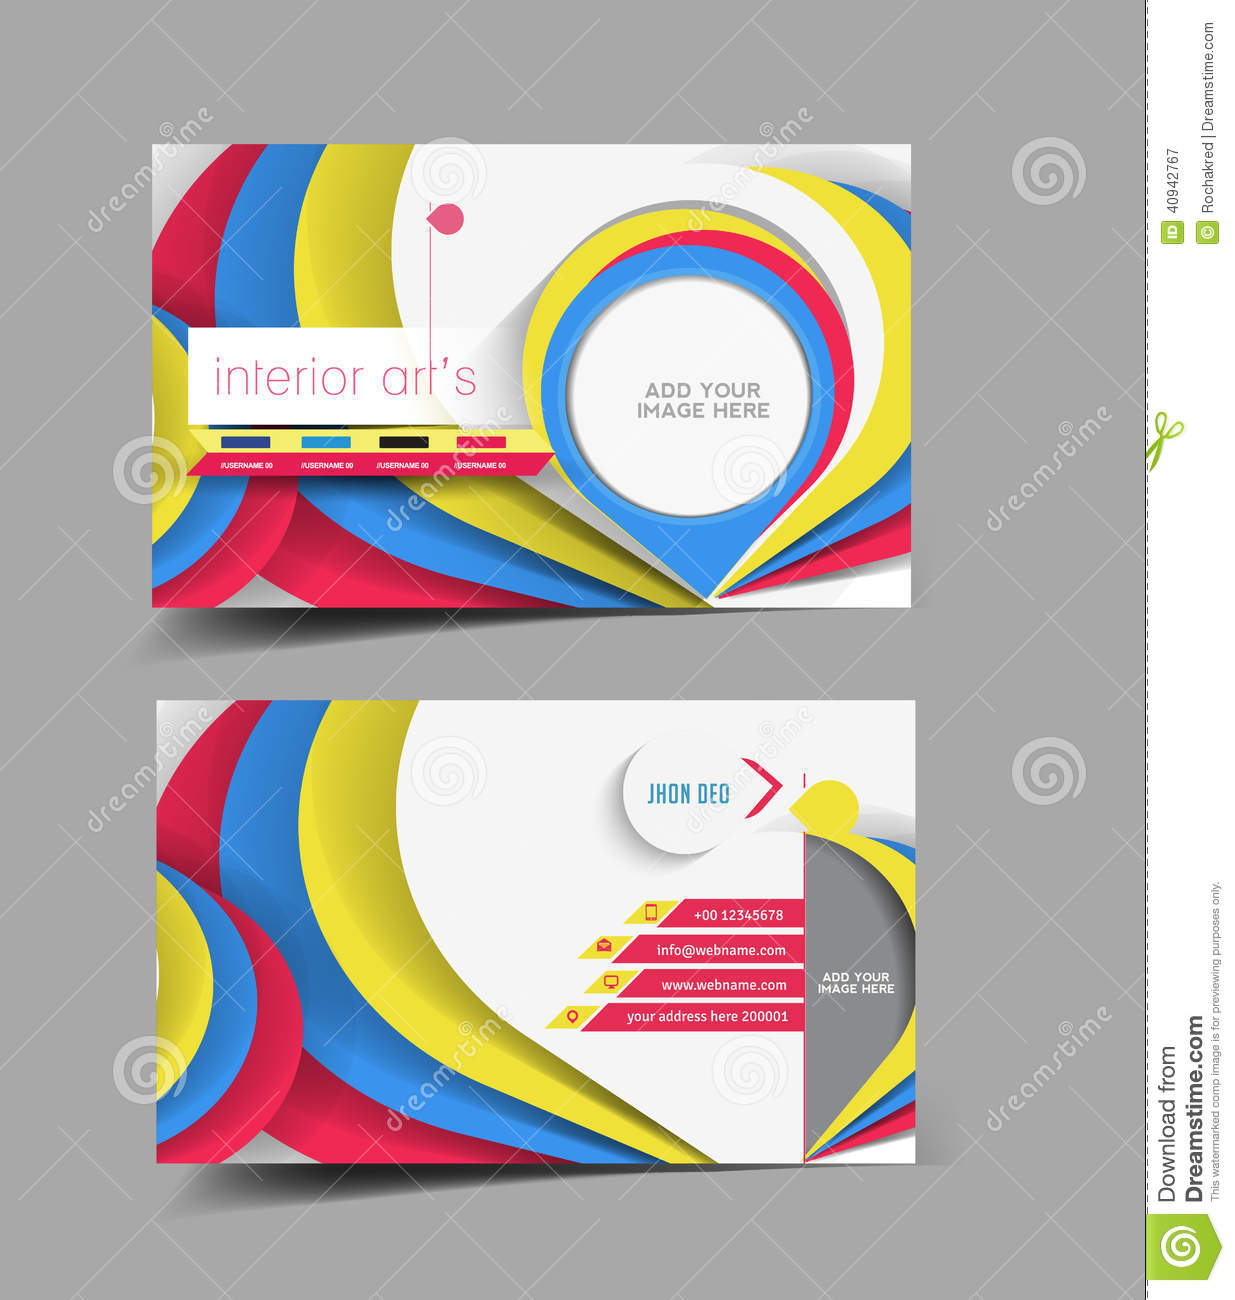 Interior Designer Business Card Stock Vector - Image: 40942767